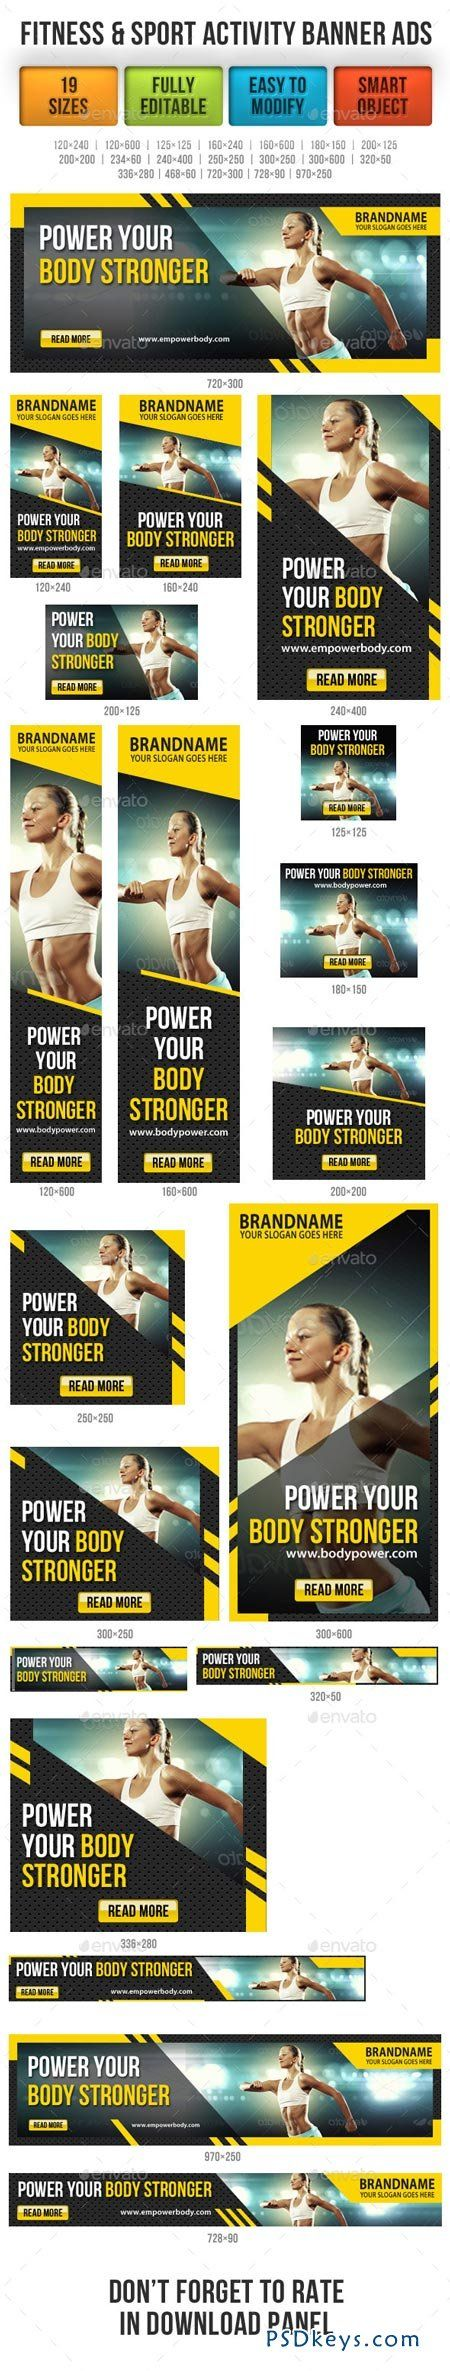 Fitness & Sport Activity Banner Ads 9120130